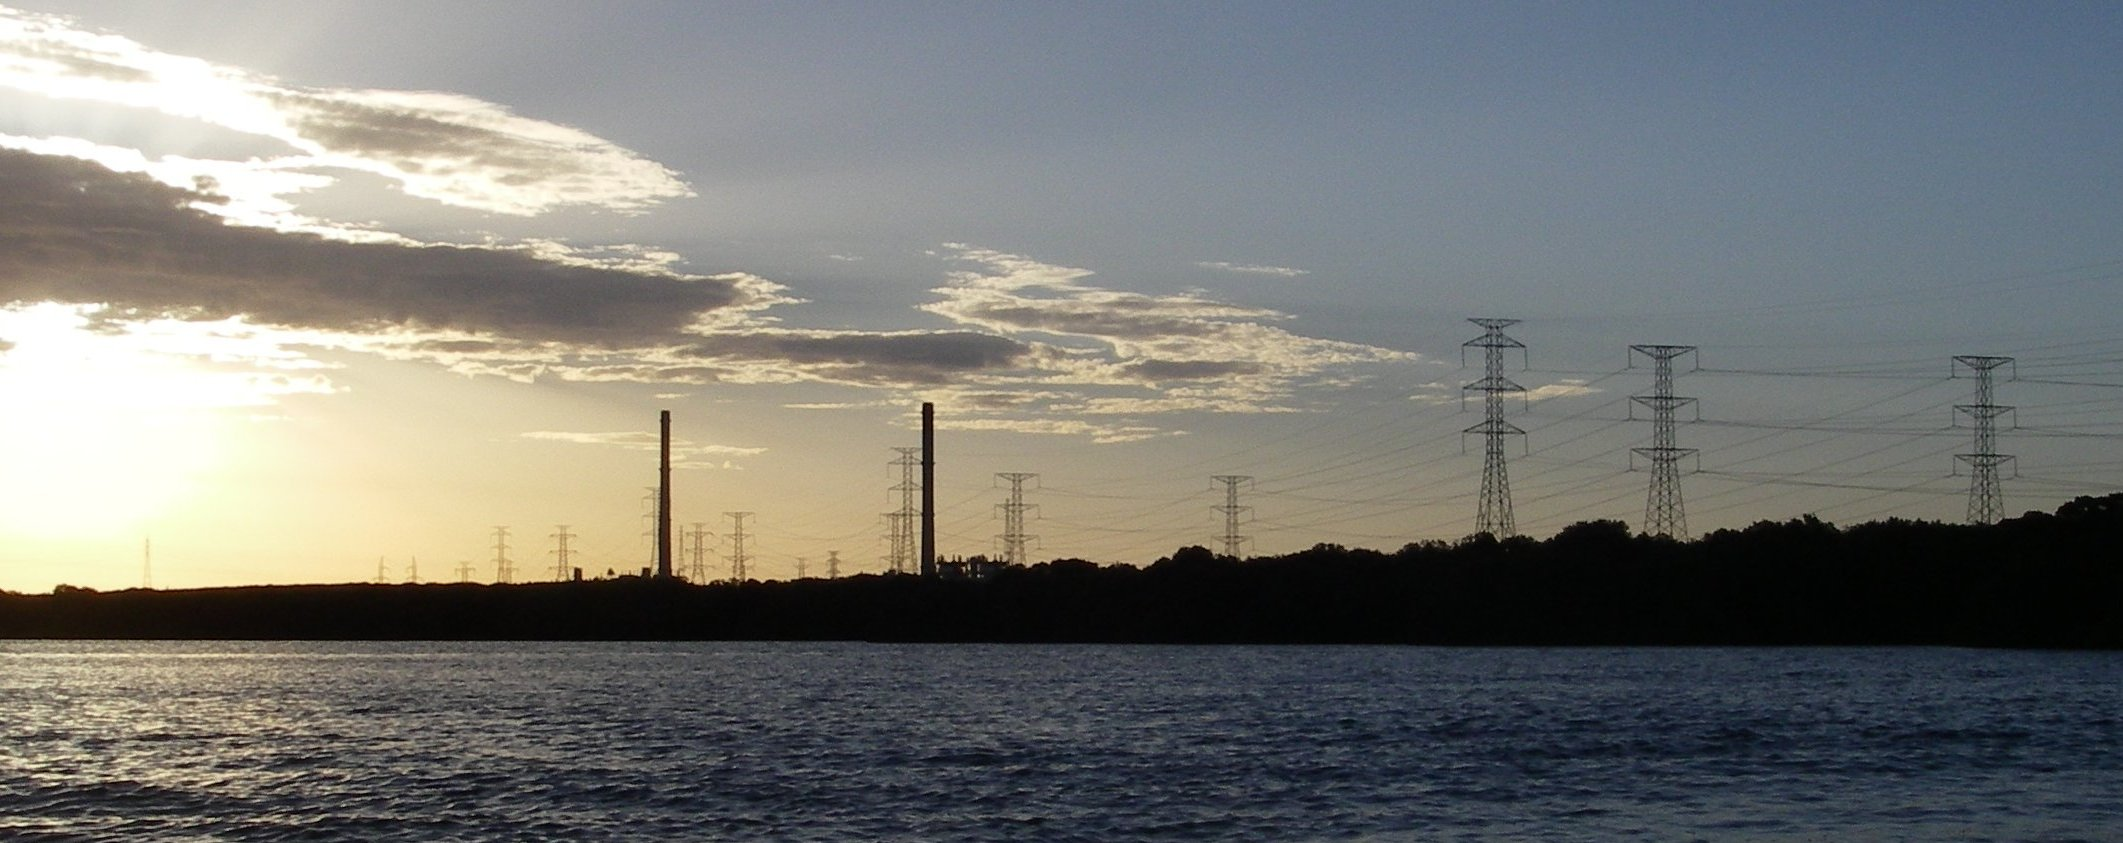 https://en.wikipedia.org/wiki/Torrens_Island_Power_Station